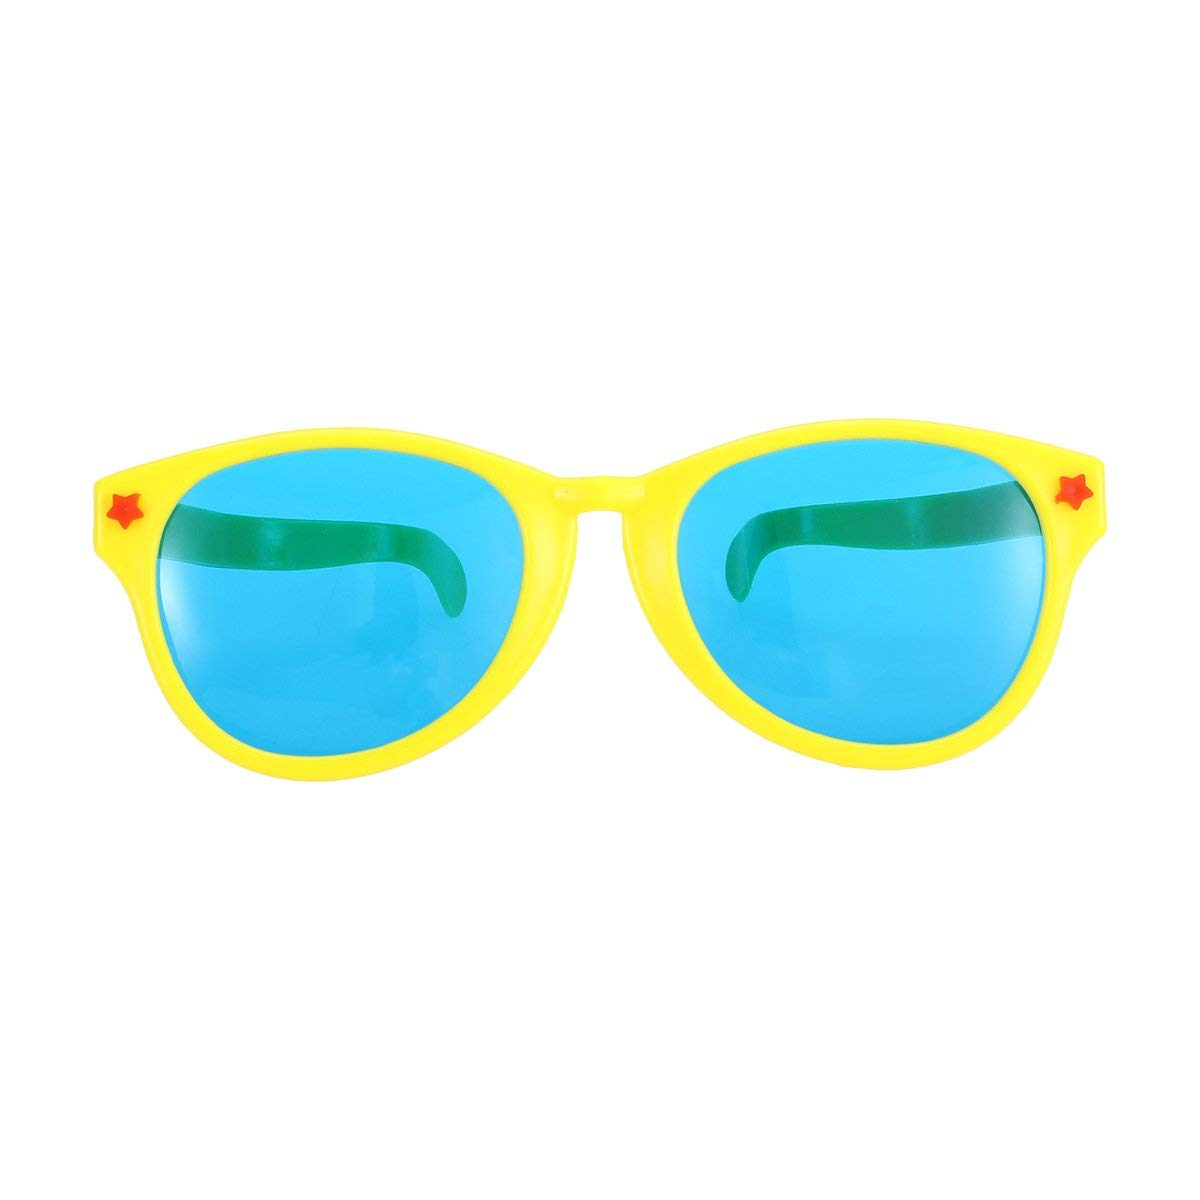 Cheap Oversized Party Glasses, find Oversized Party Glasses